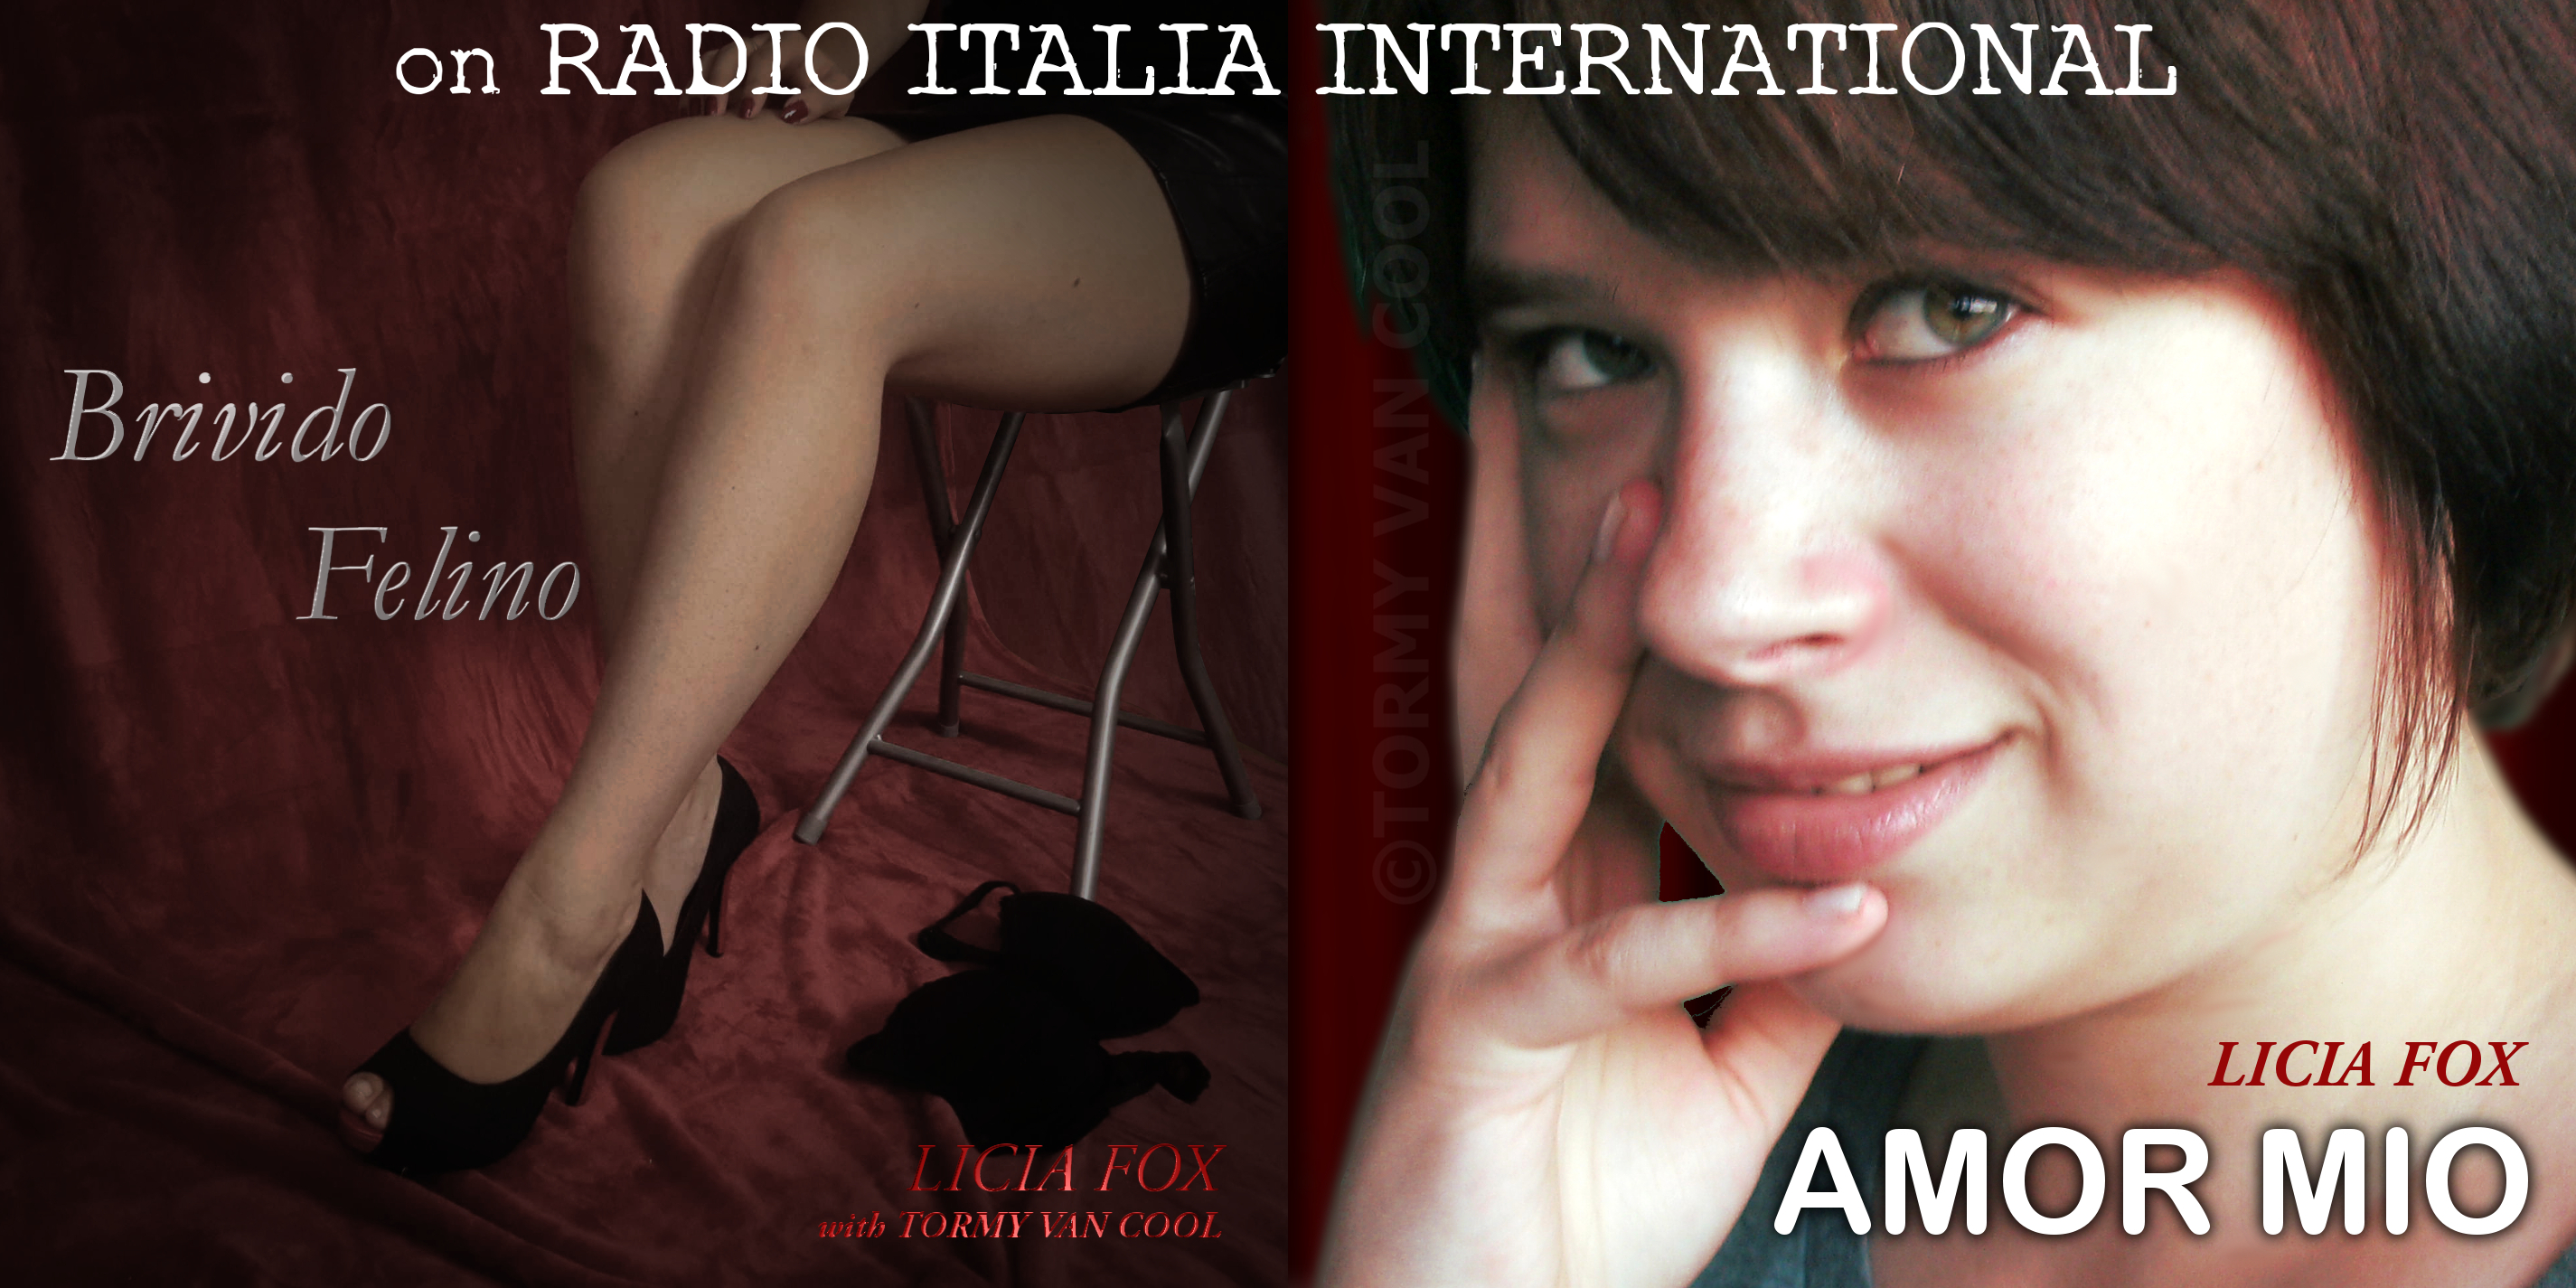 POster of Licia fox on RADIO ITALIA